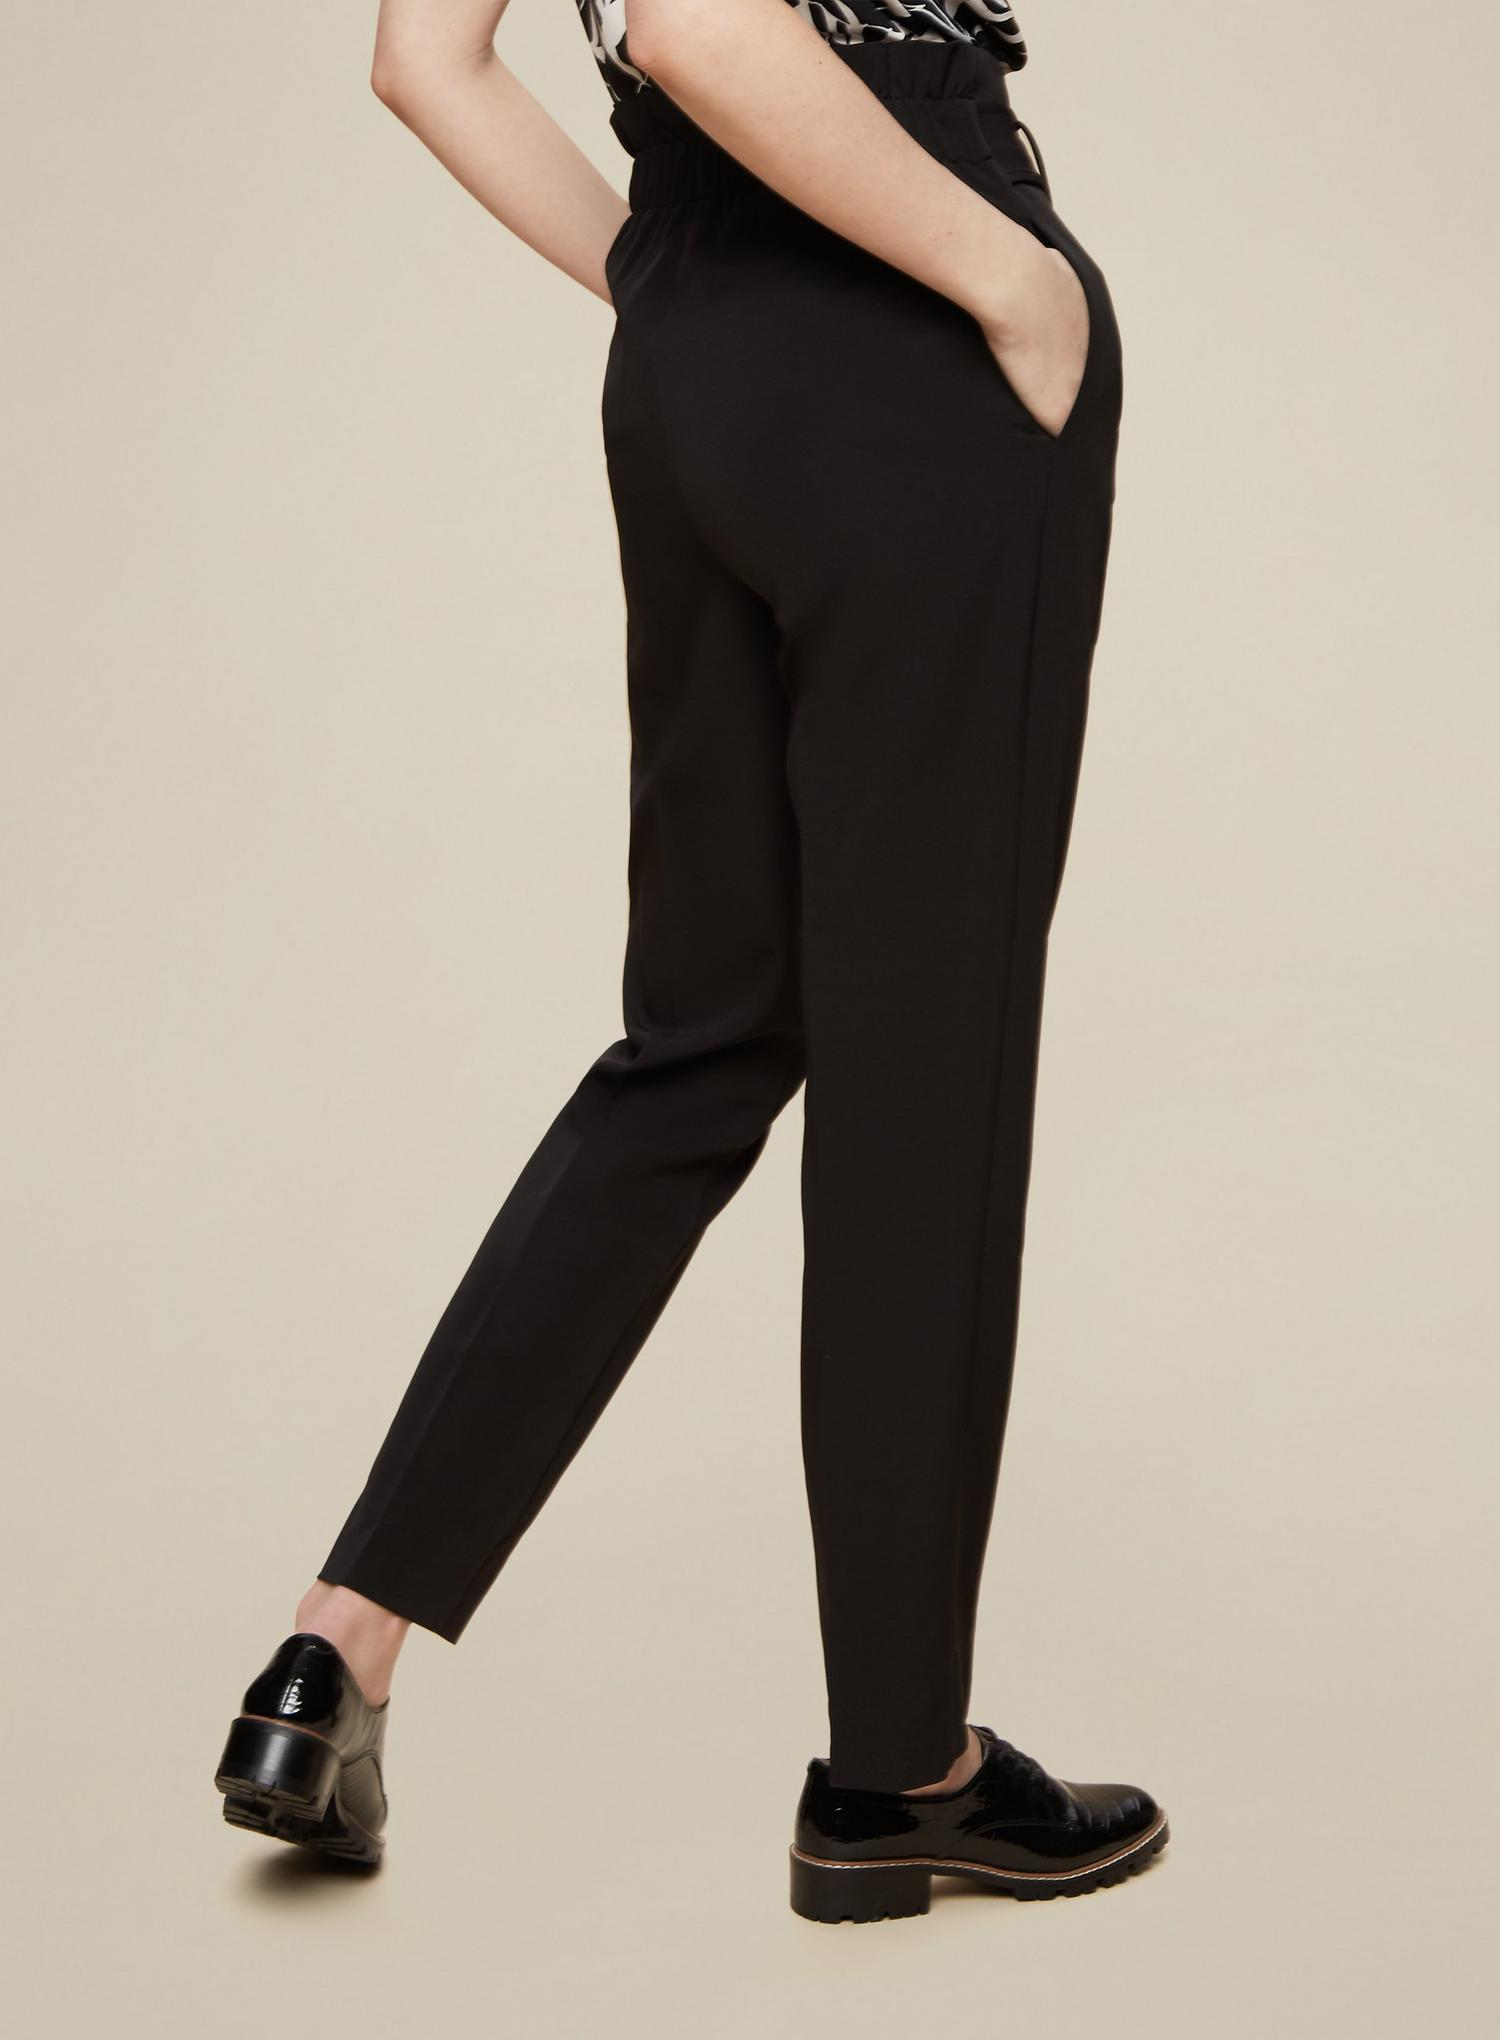 105 Tall Black Belted Trousers image number 4